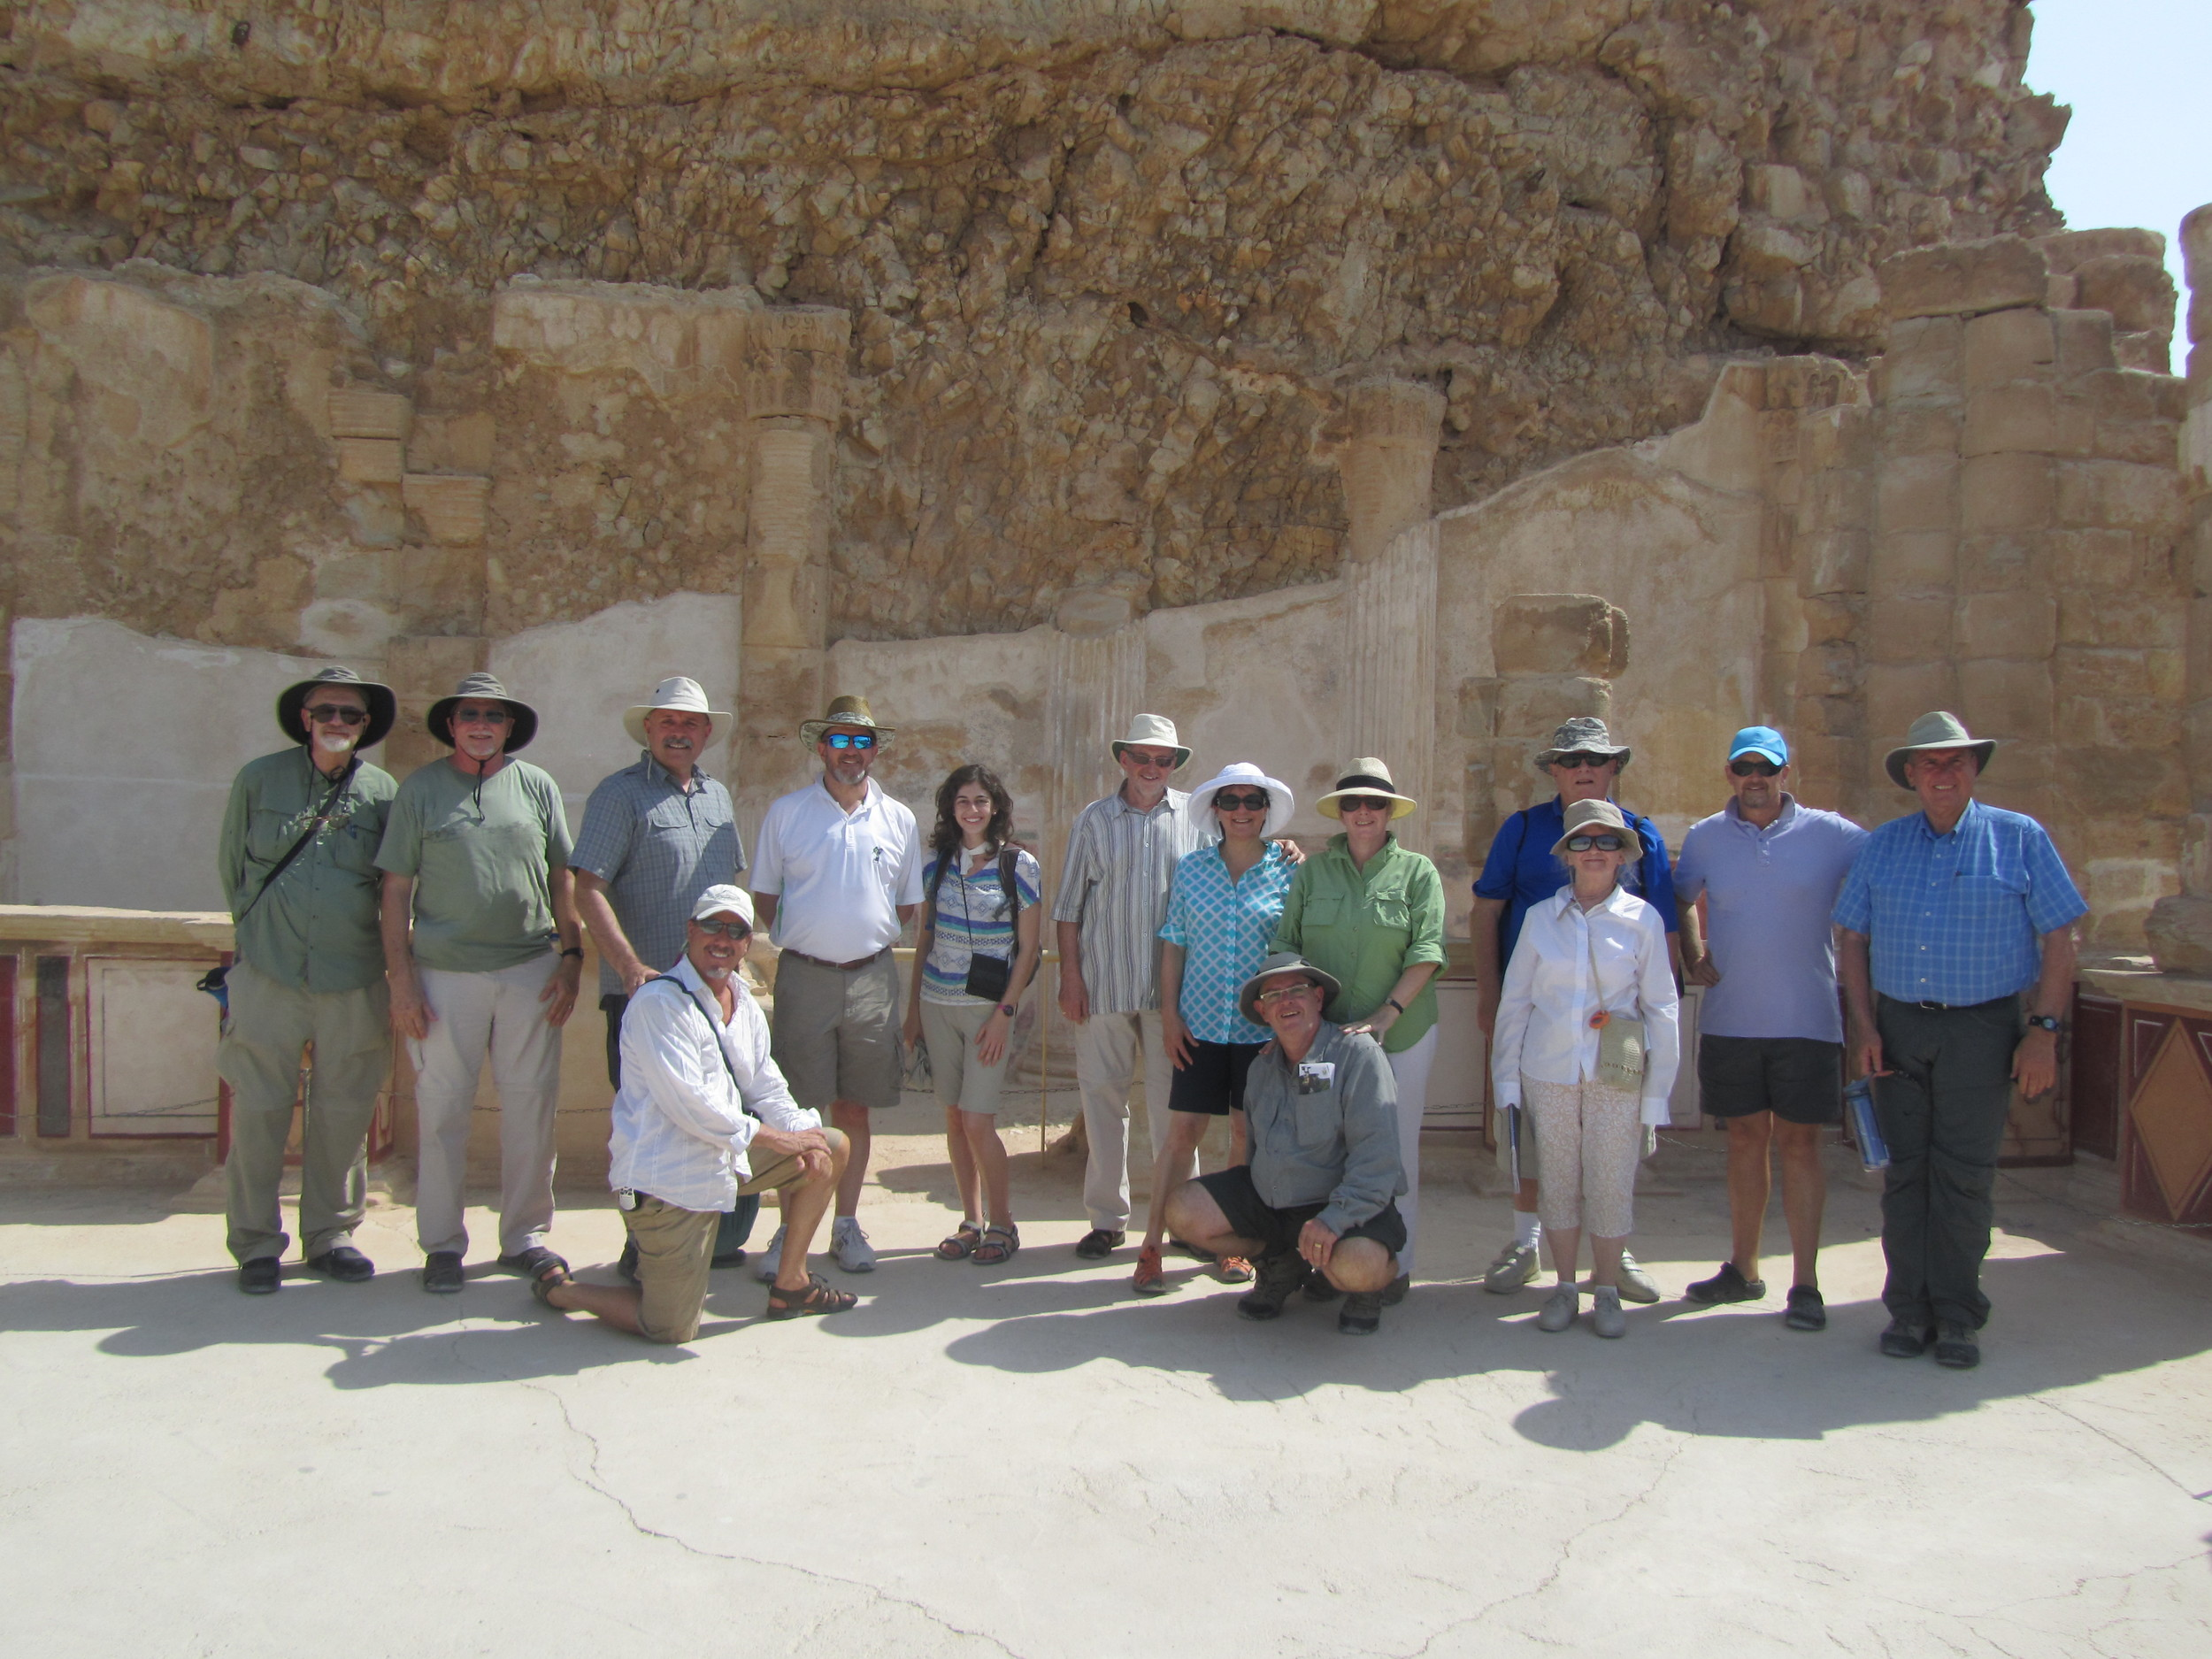 Some of our group of pilgrims at Masada